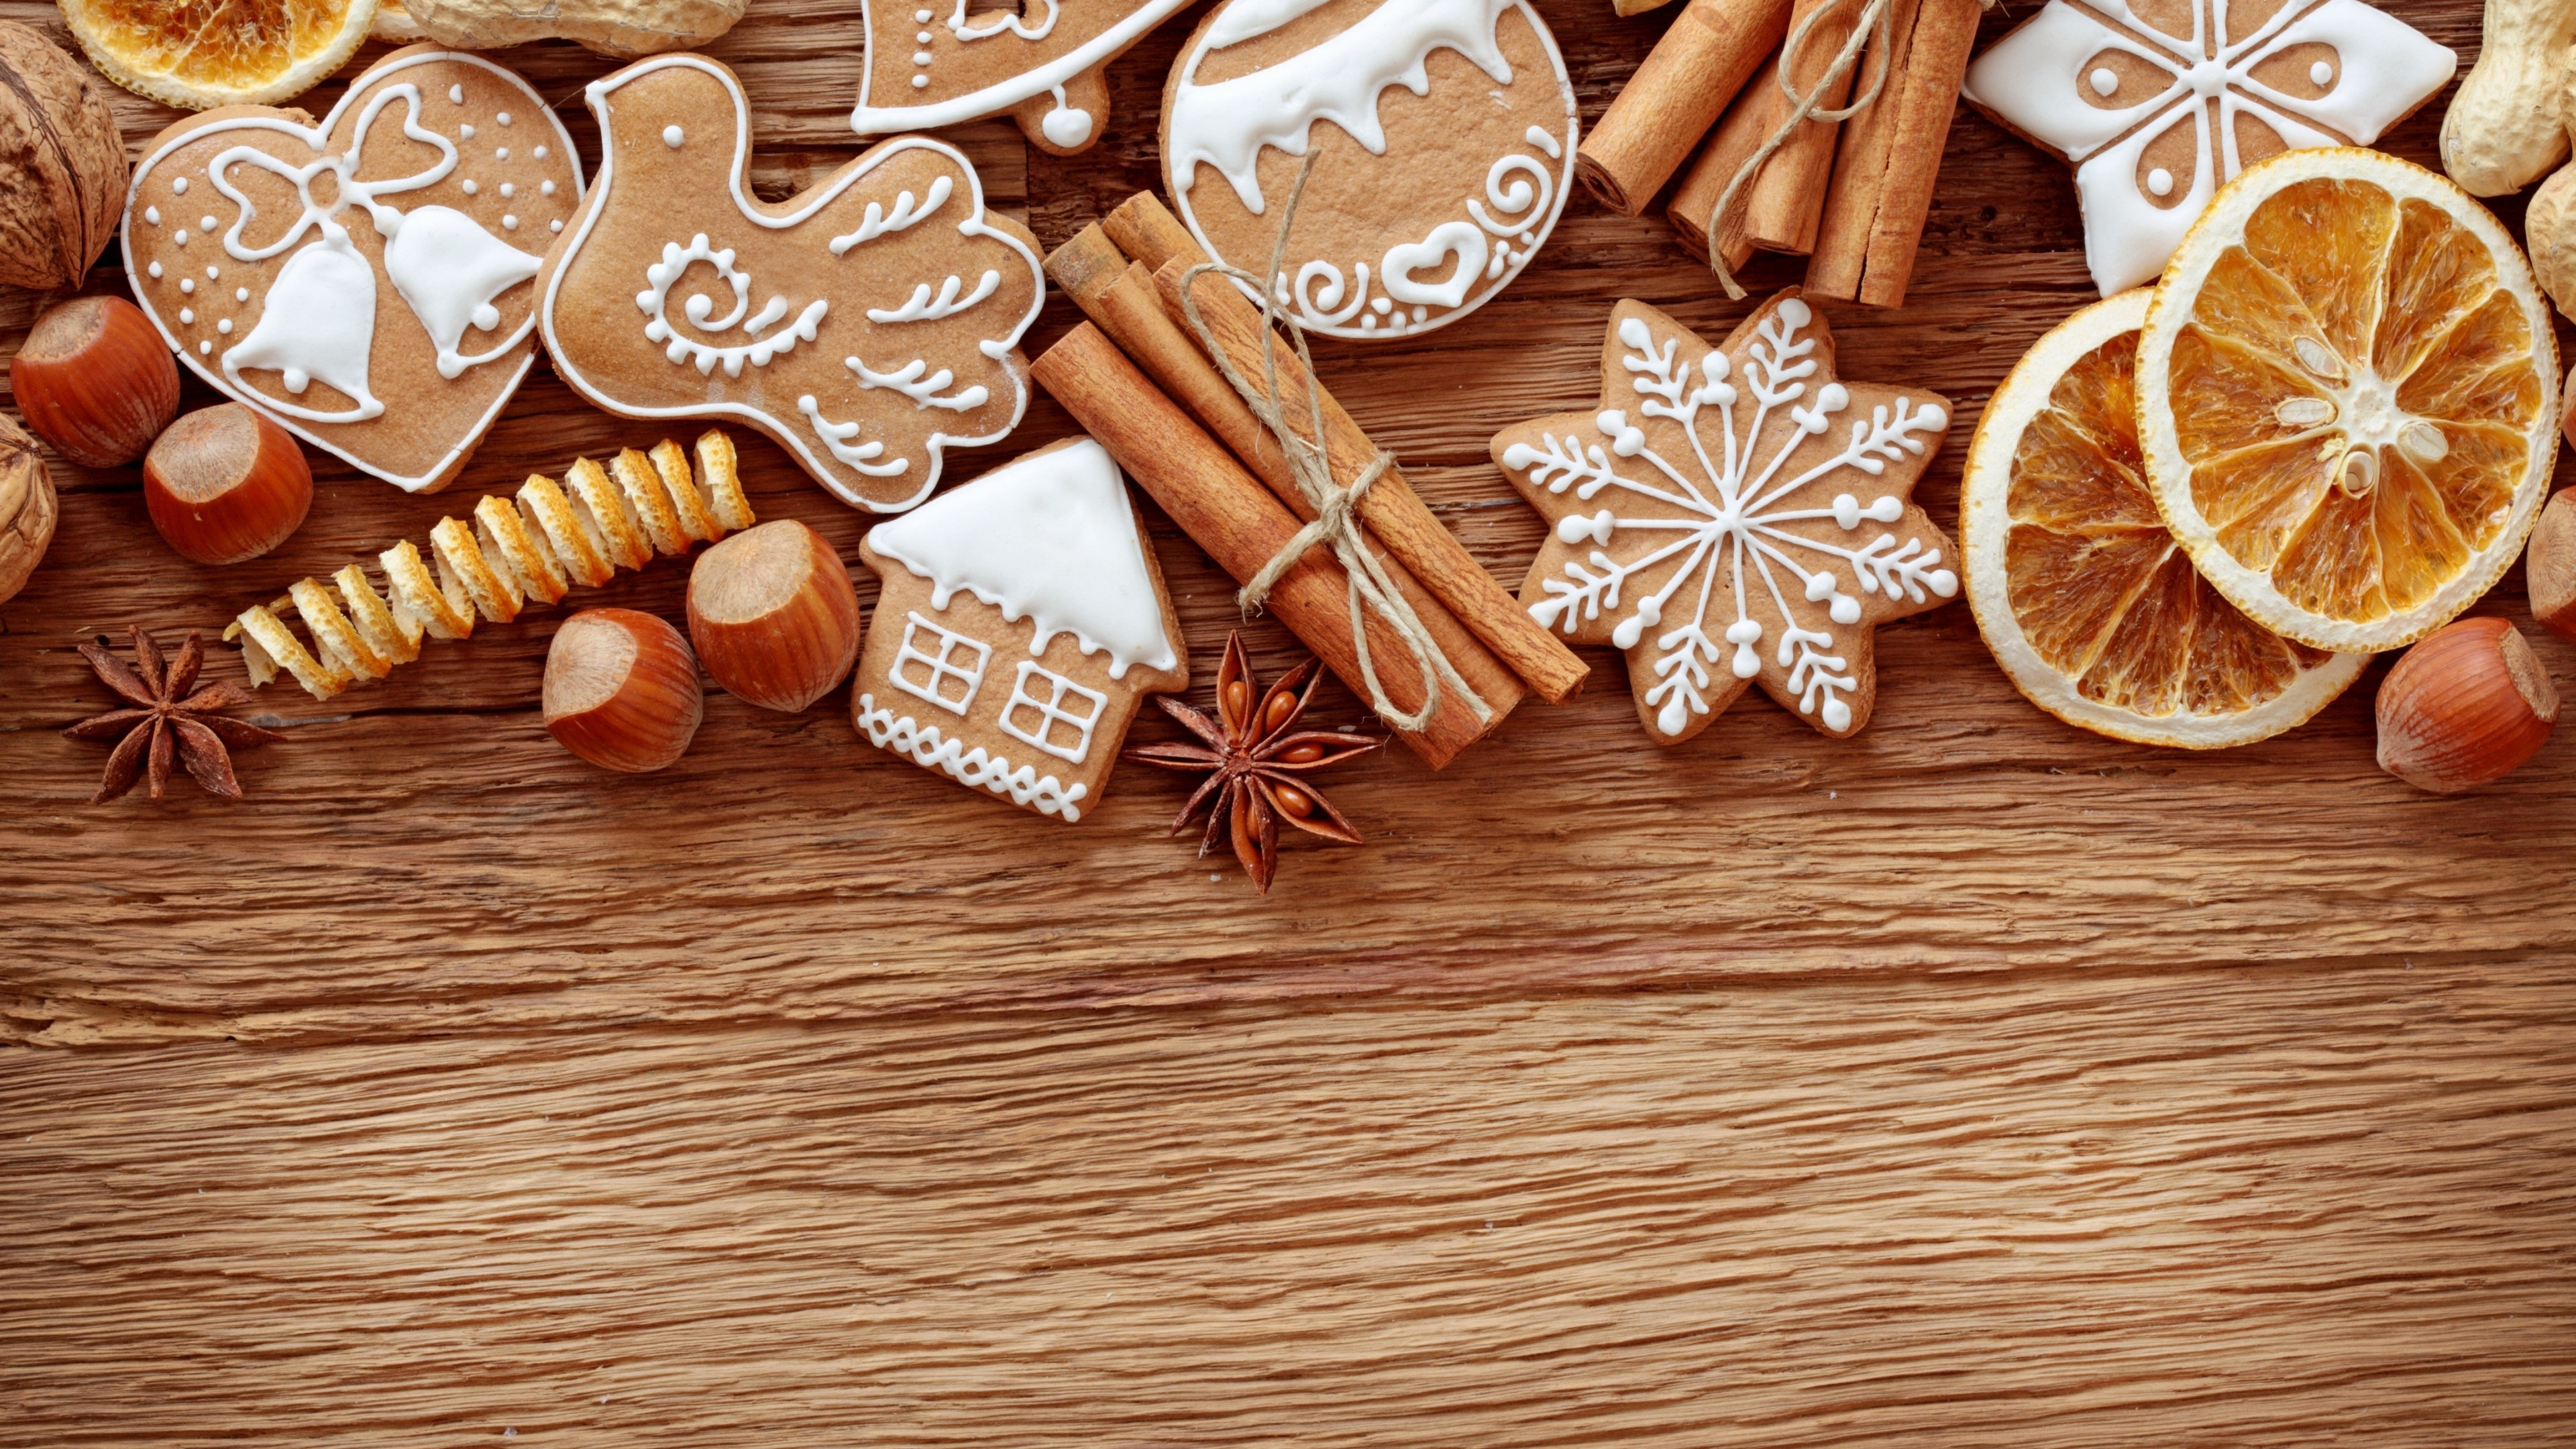 Wallpaper christmas new year cake cinnamon 4k for Sfondi natalizi 1920x1080